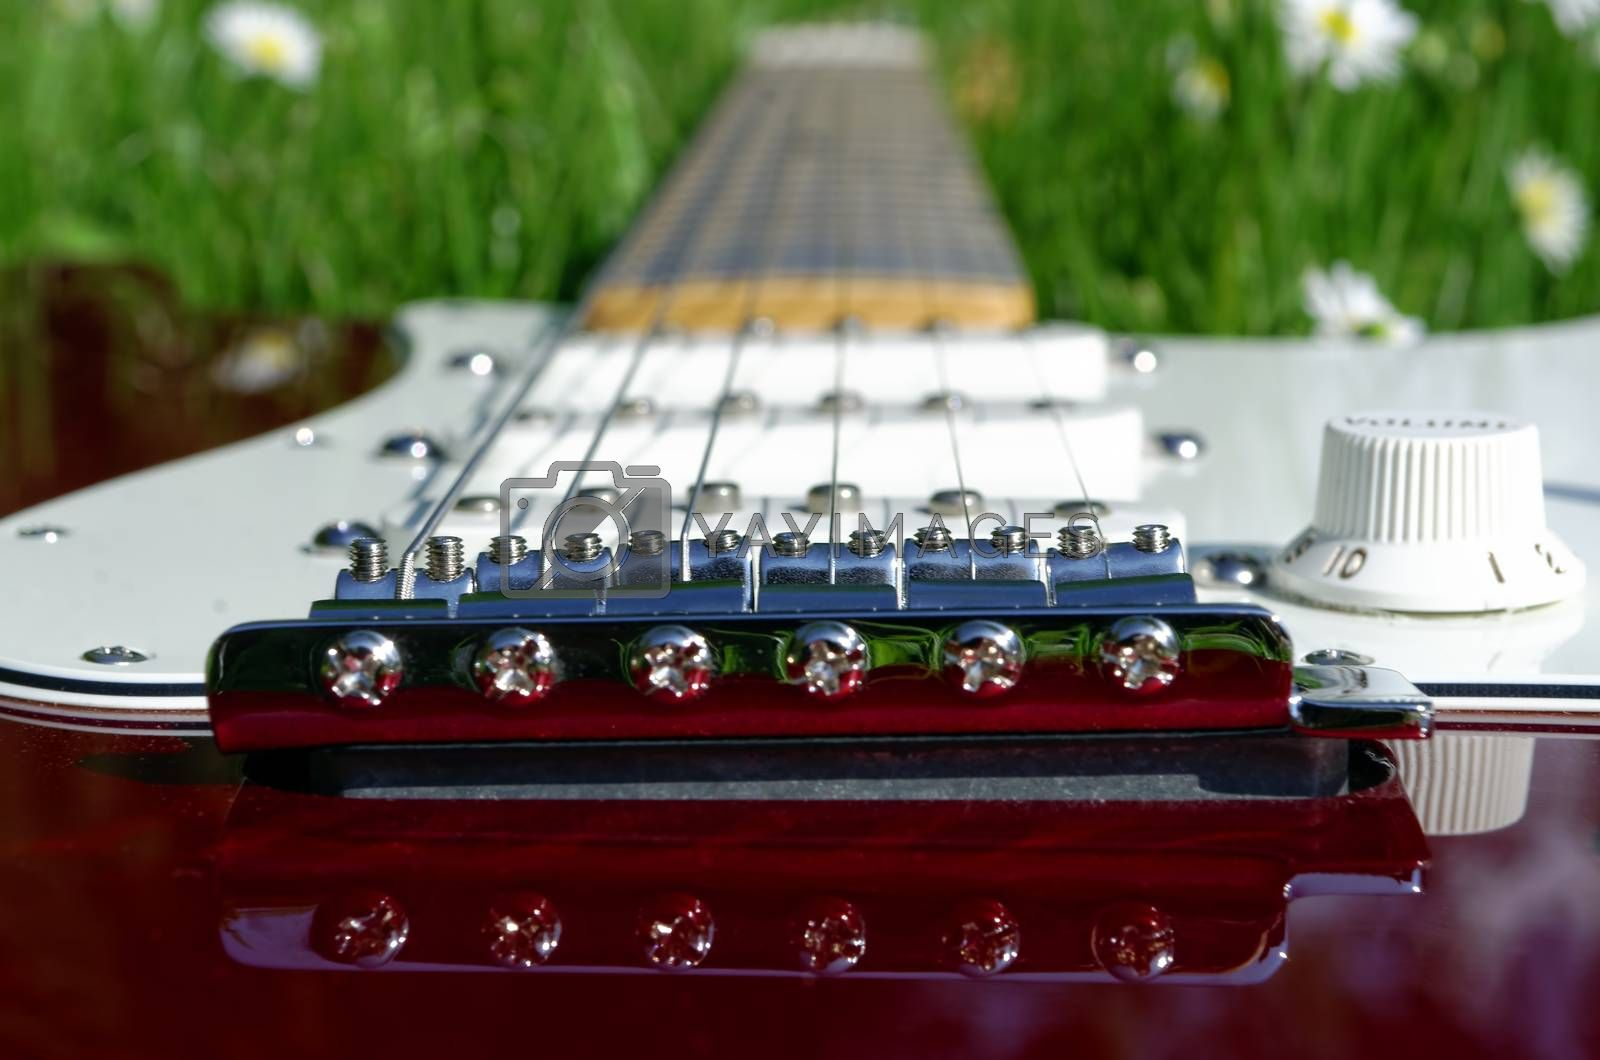 electric guitar lying in grass